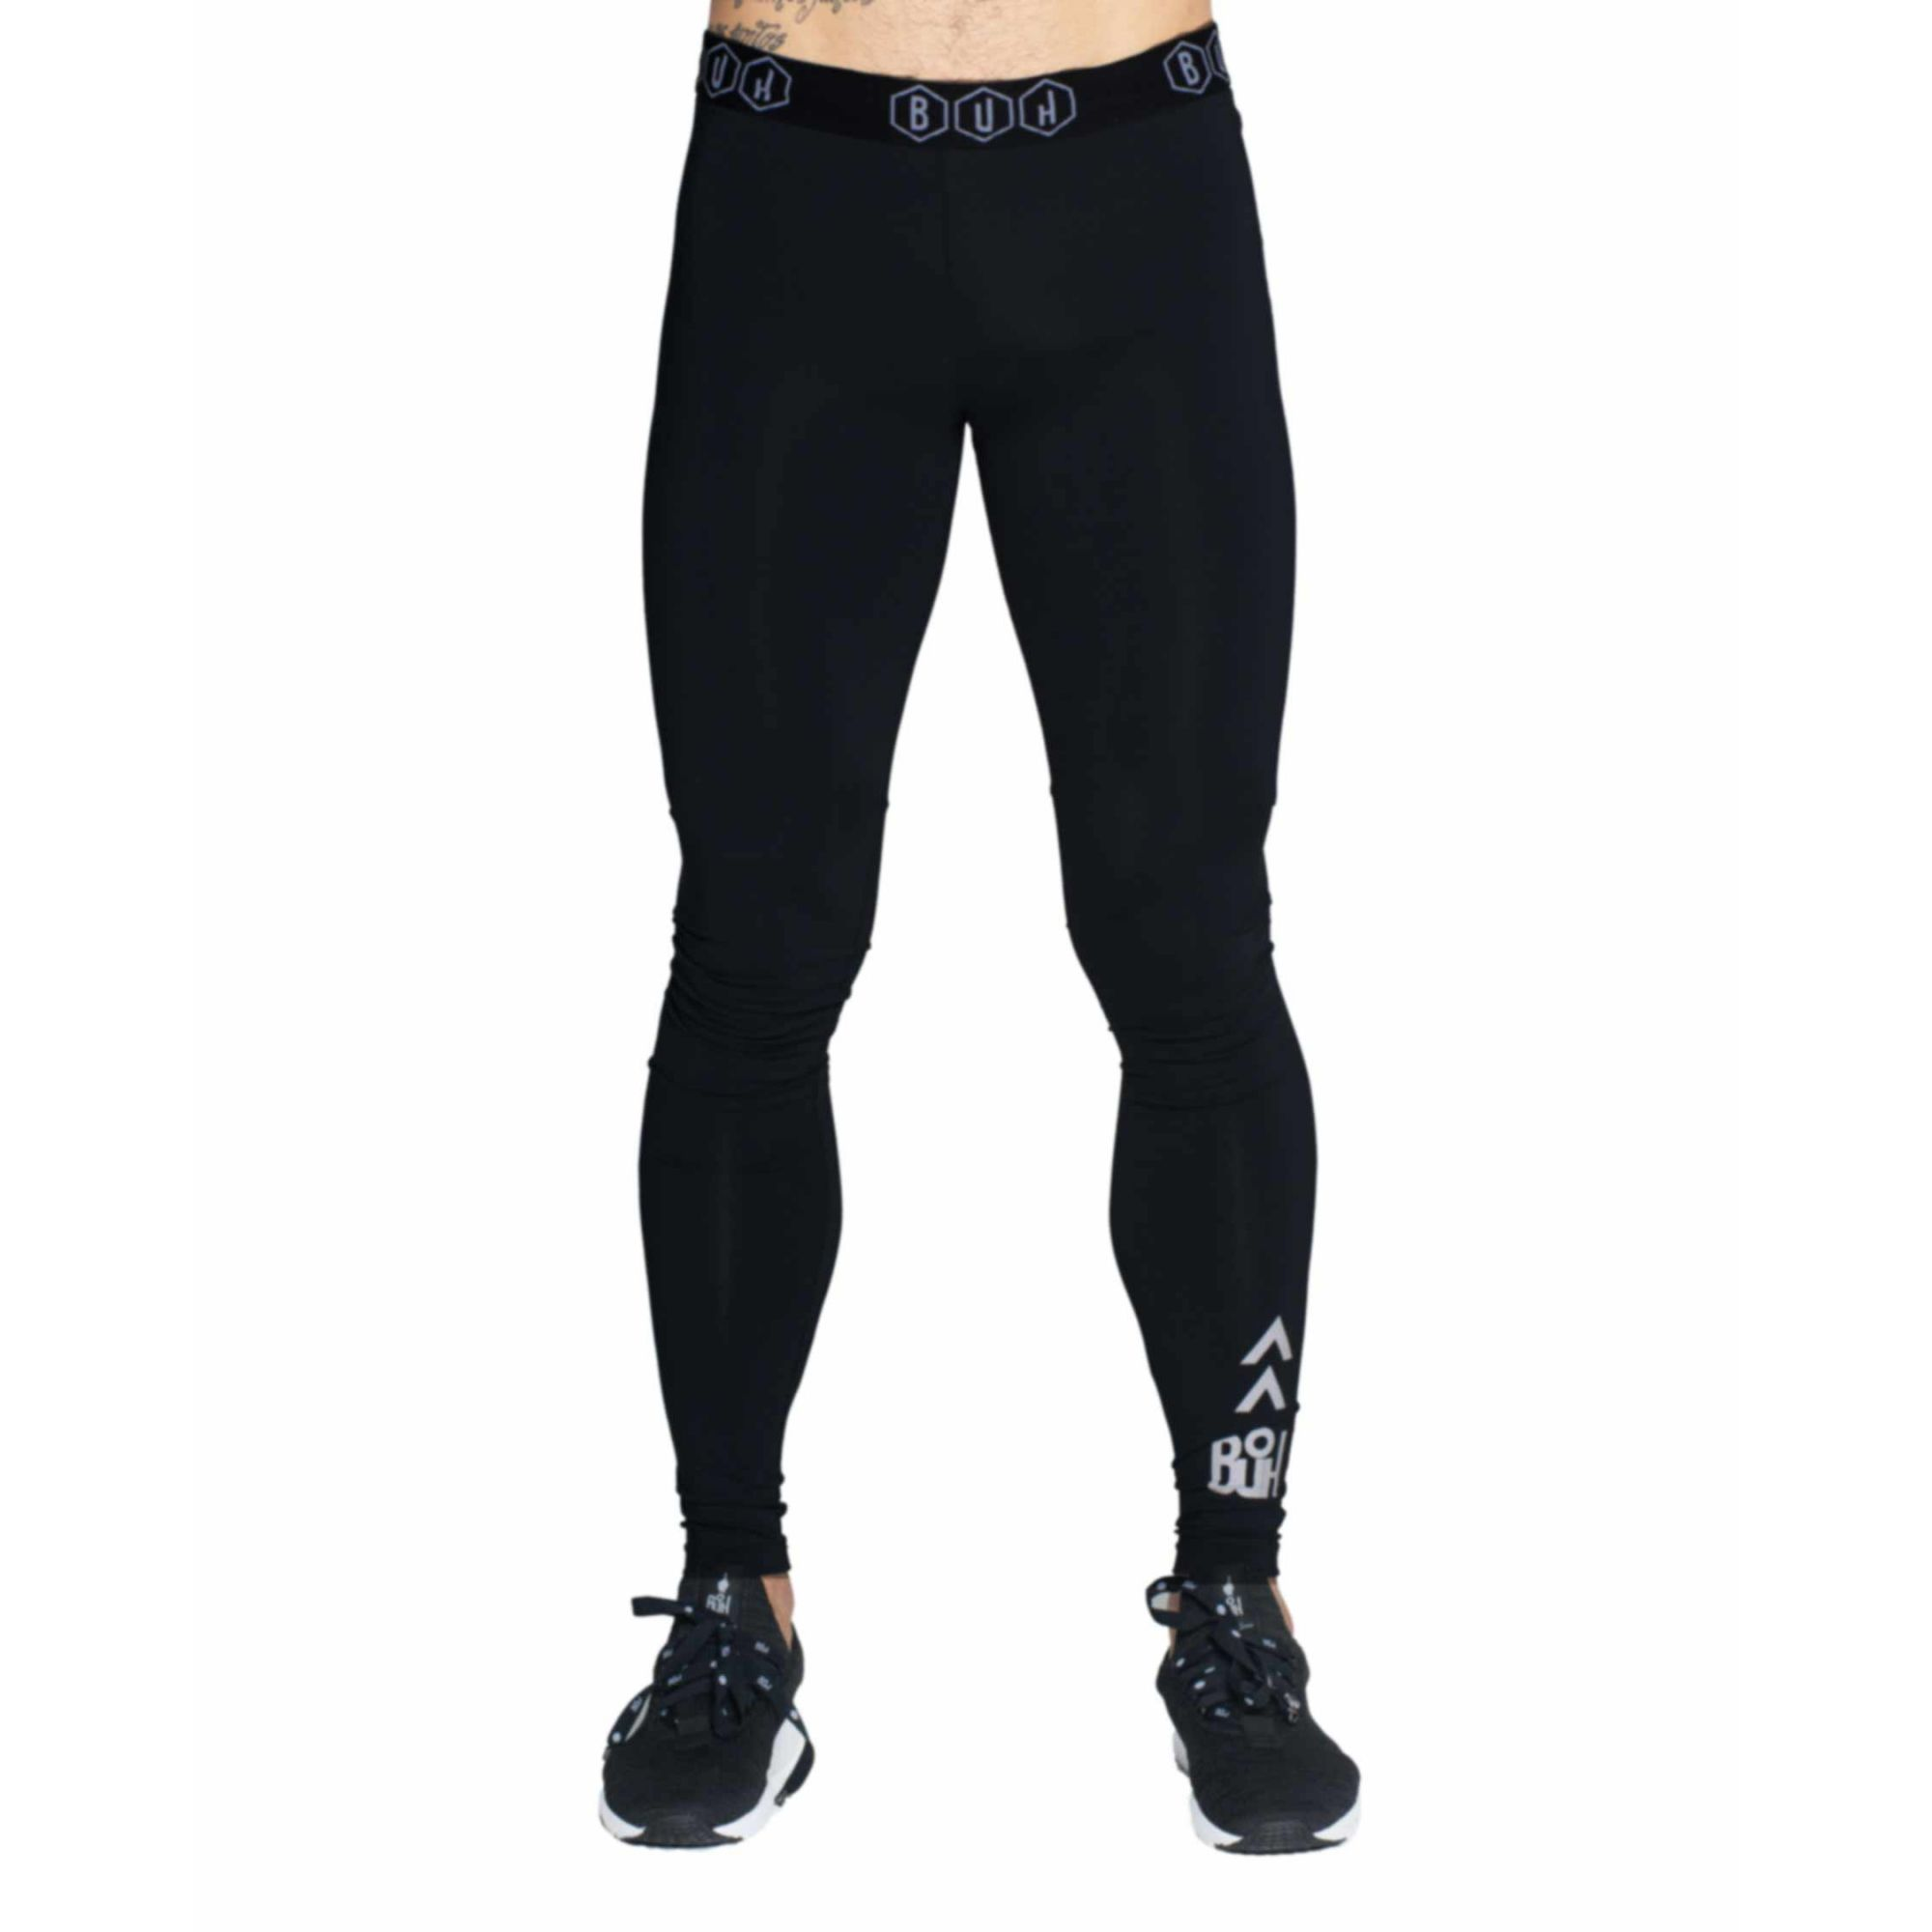 Calça Buh Legging Révolution Black